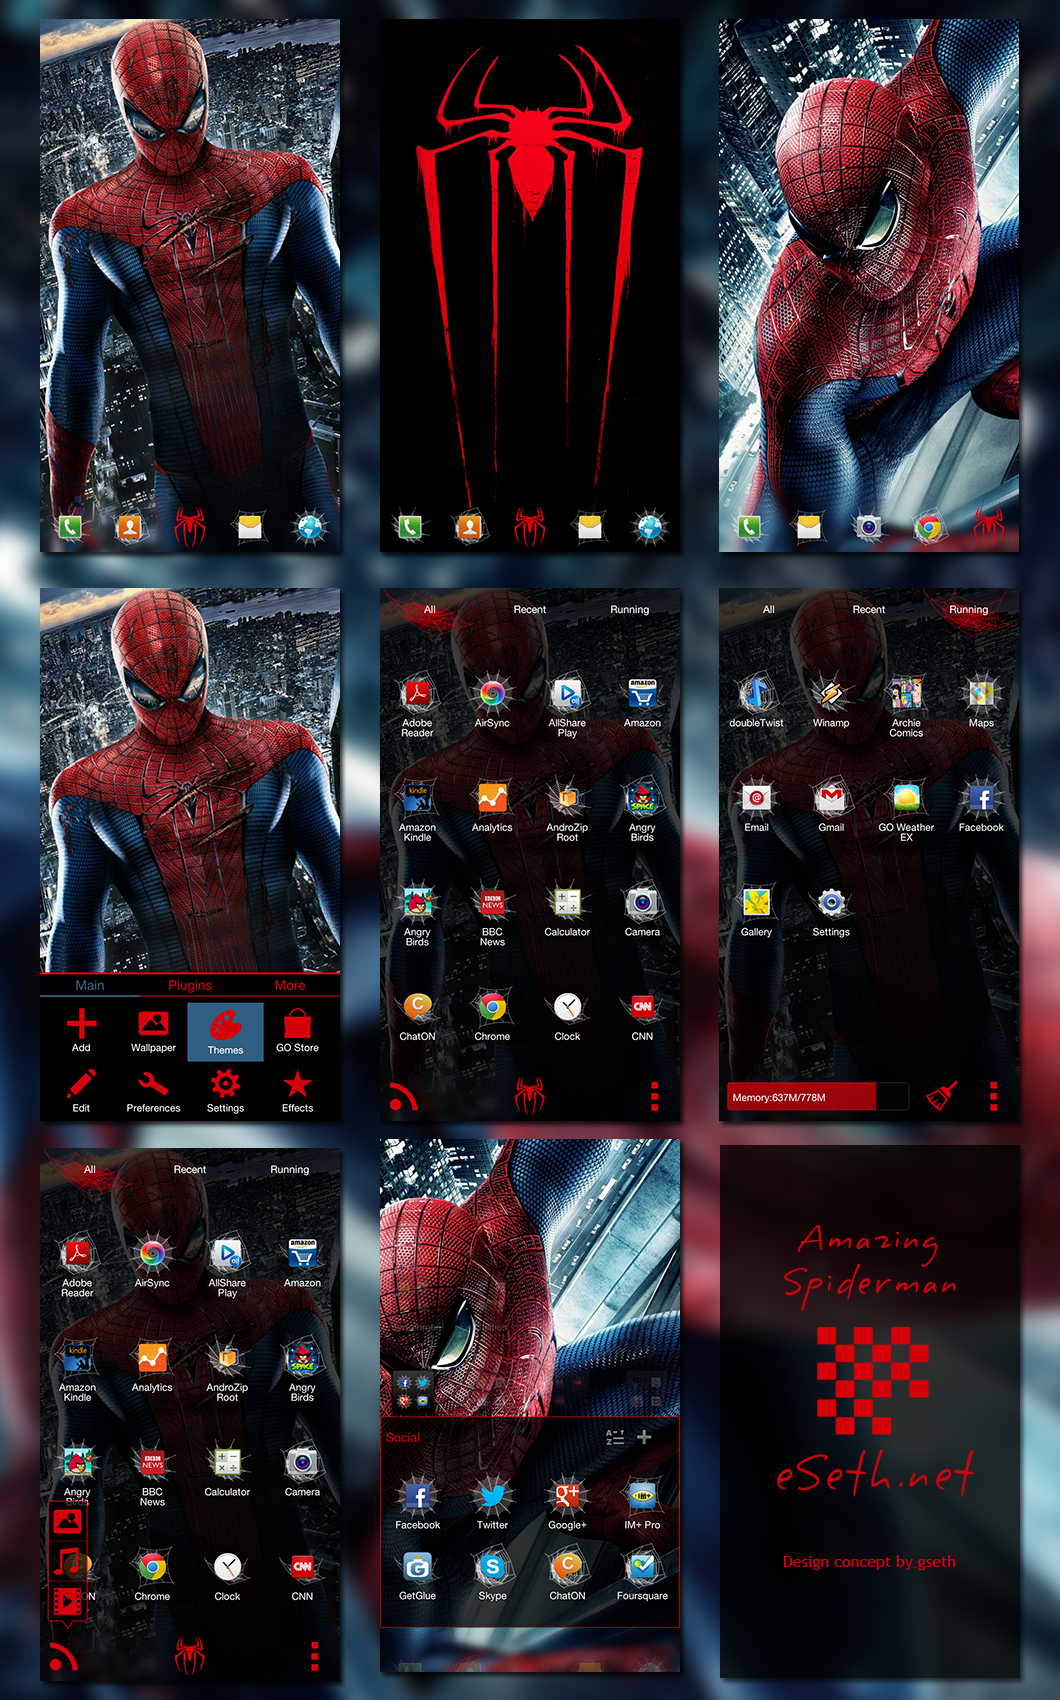 Download the amazing spider man app for free